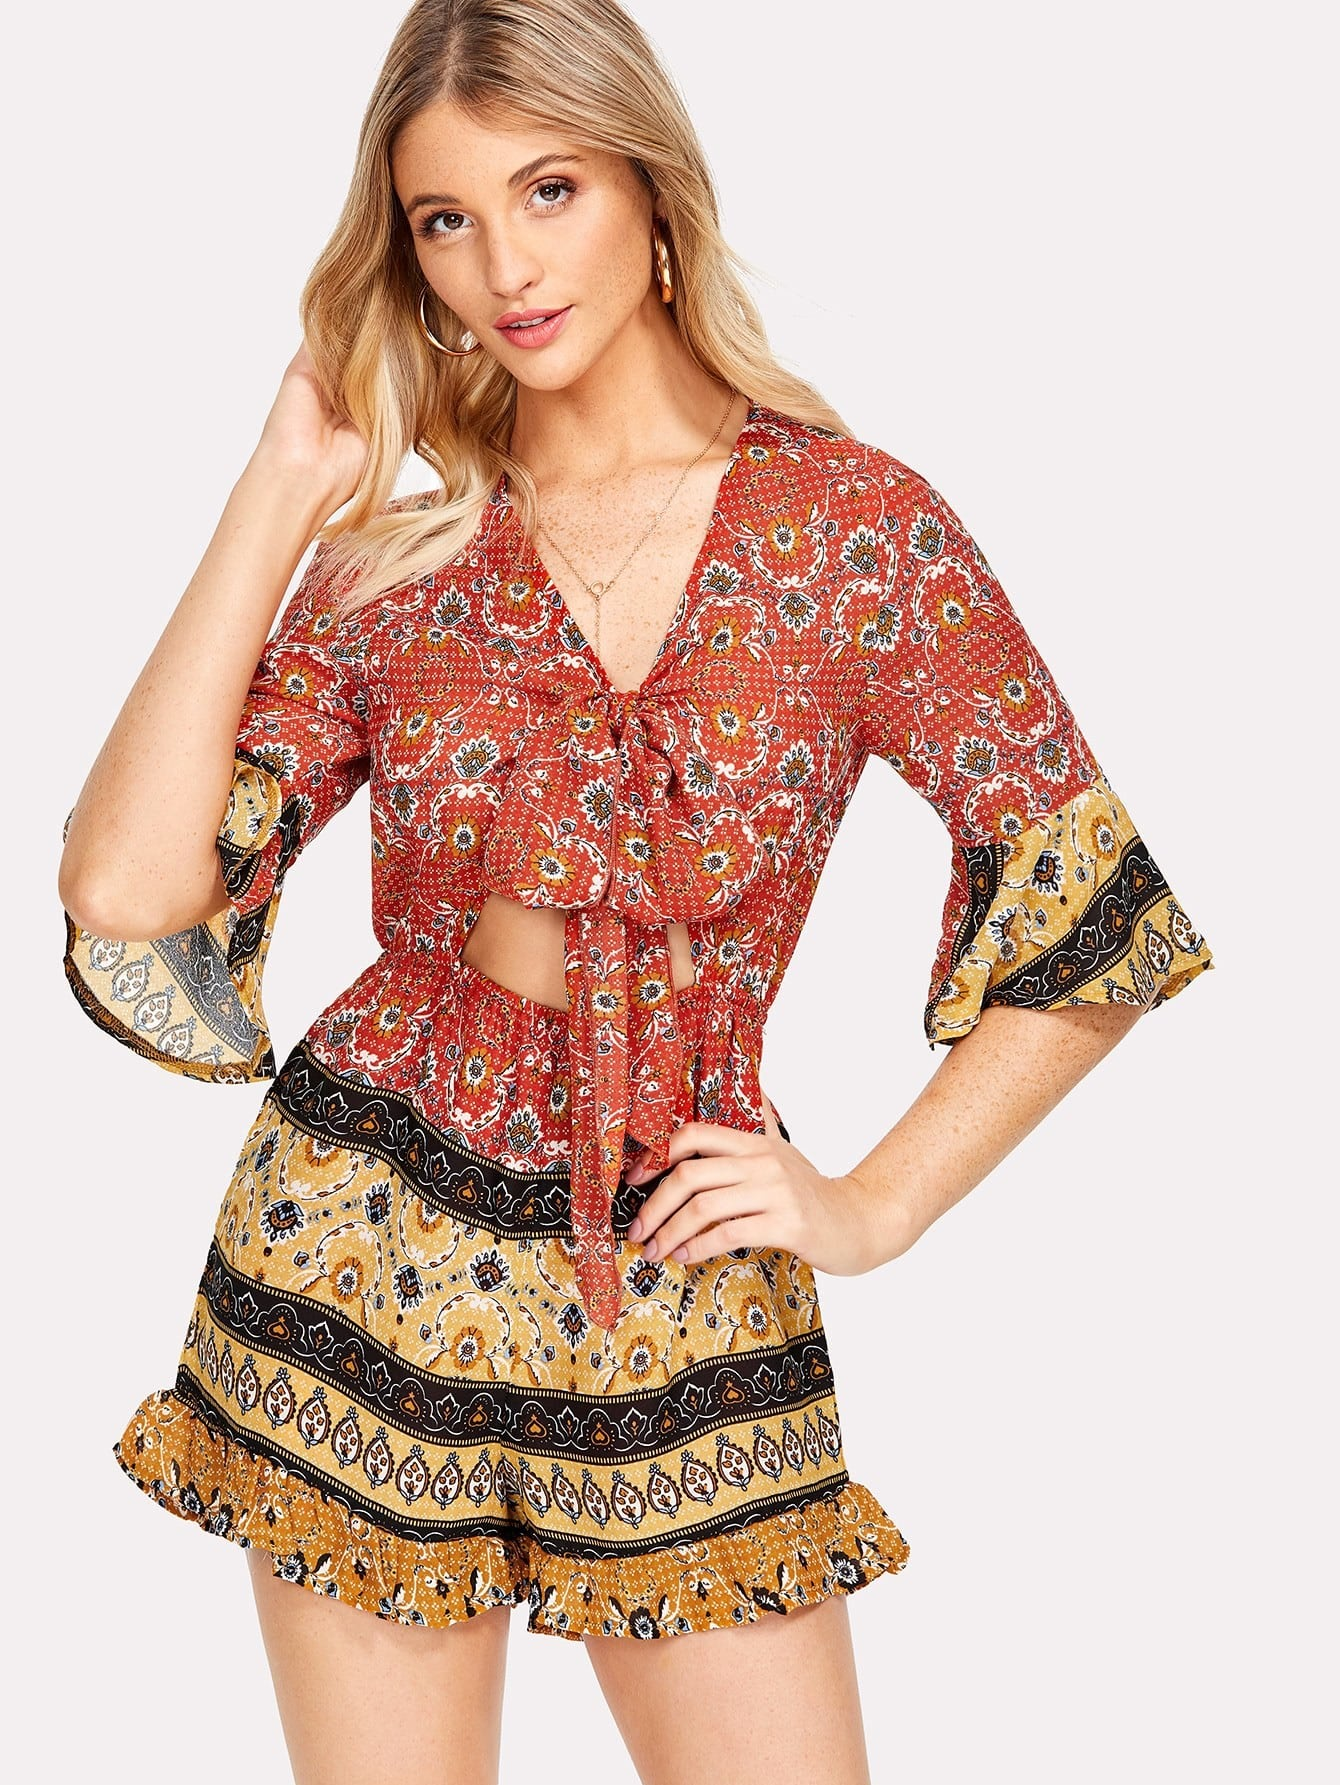 Ornate Print Knot Cutout Front Romper knot front fit